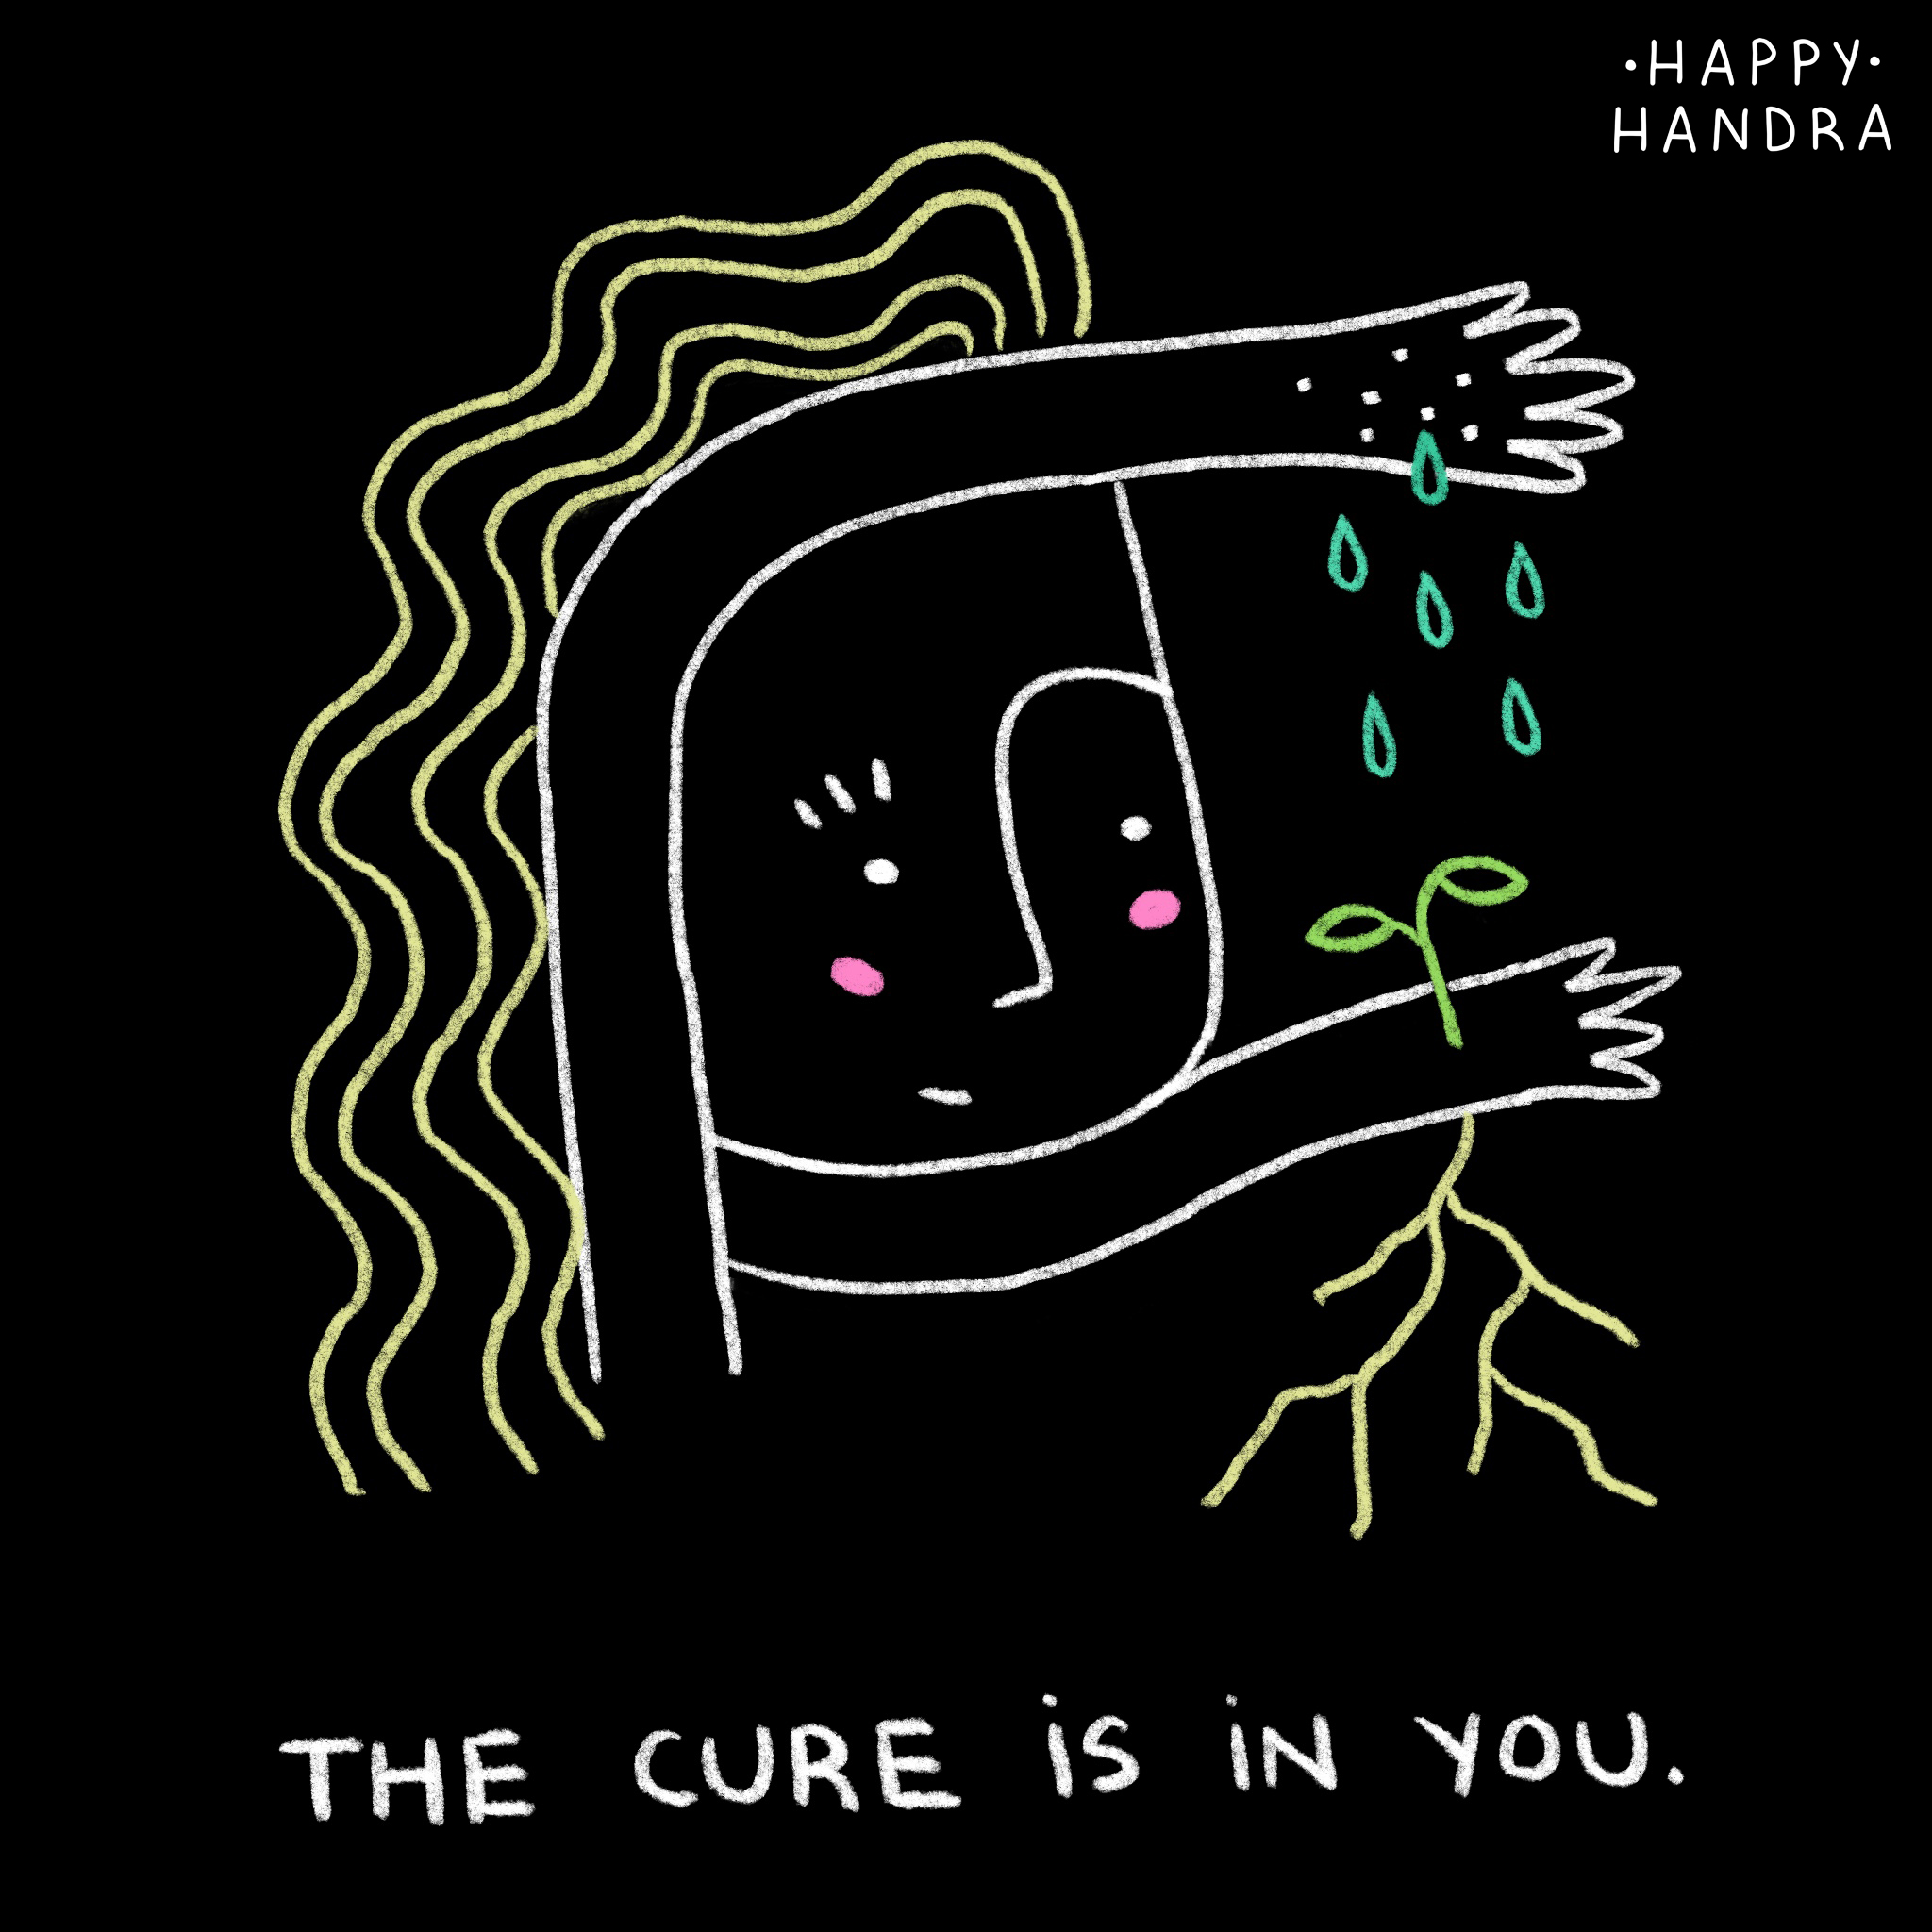 happyhandra_cure